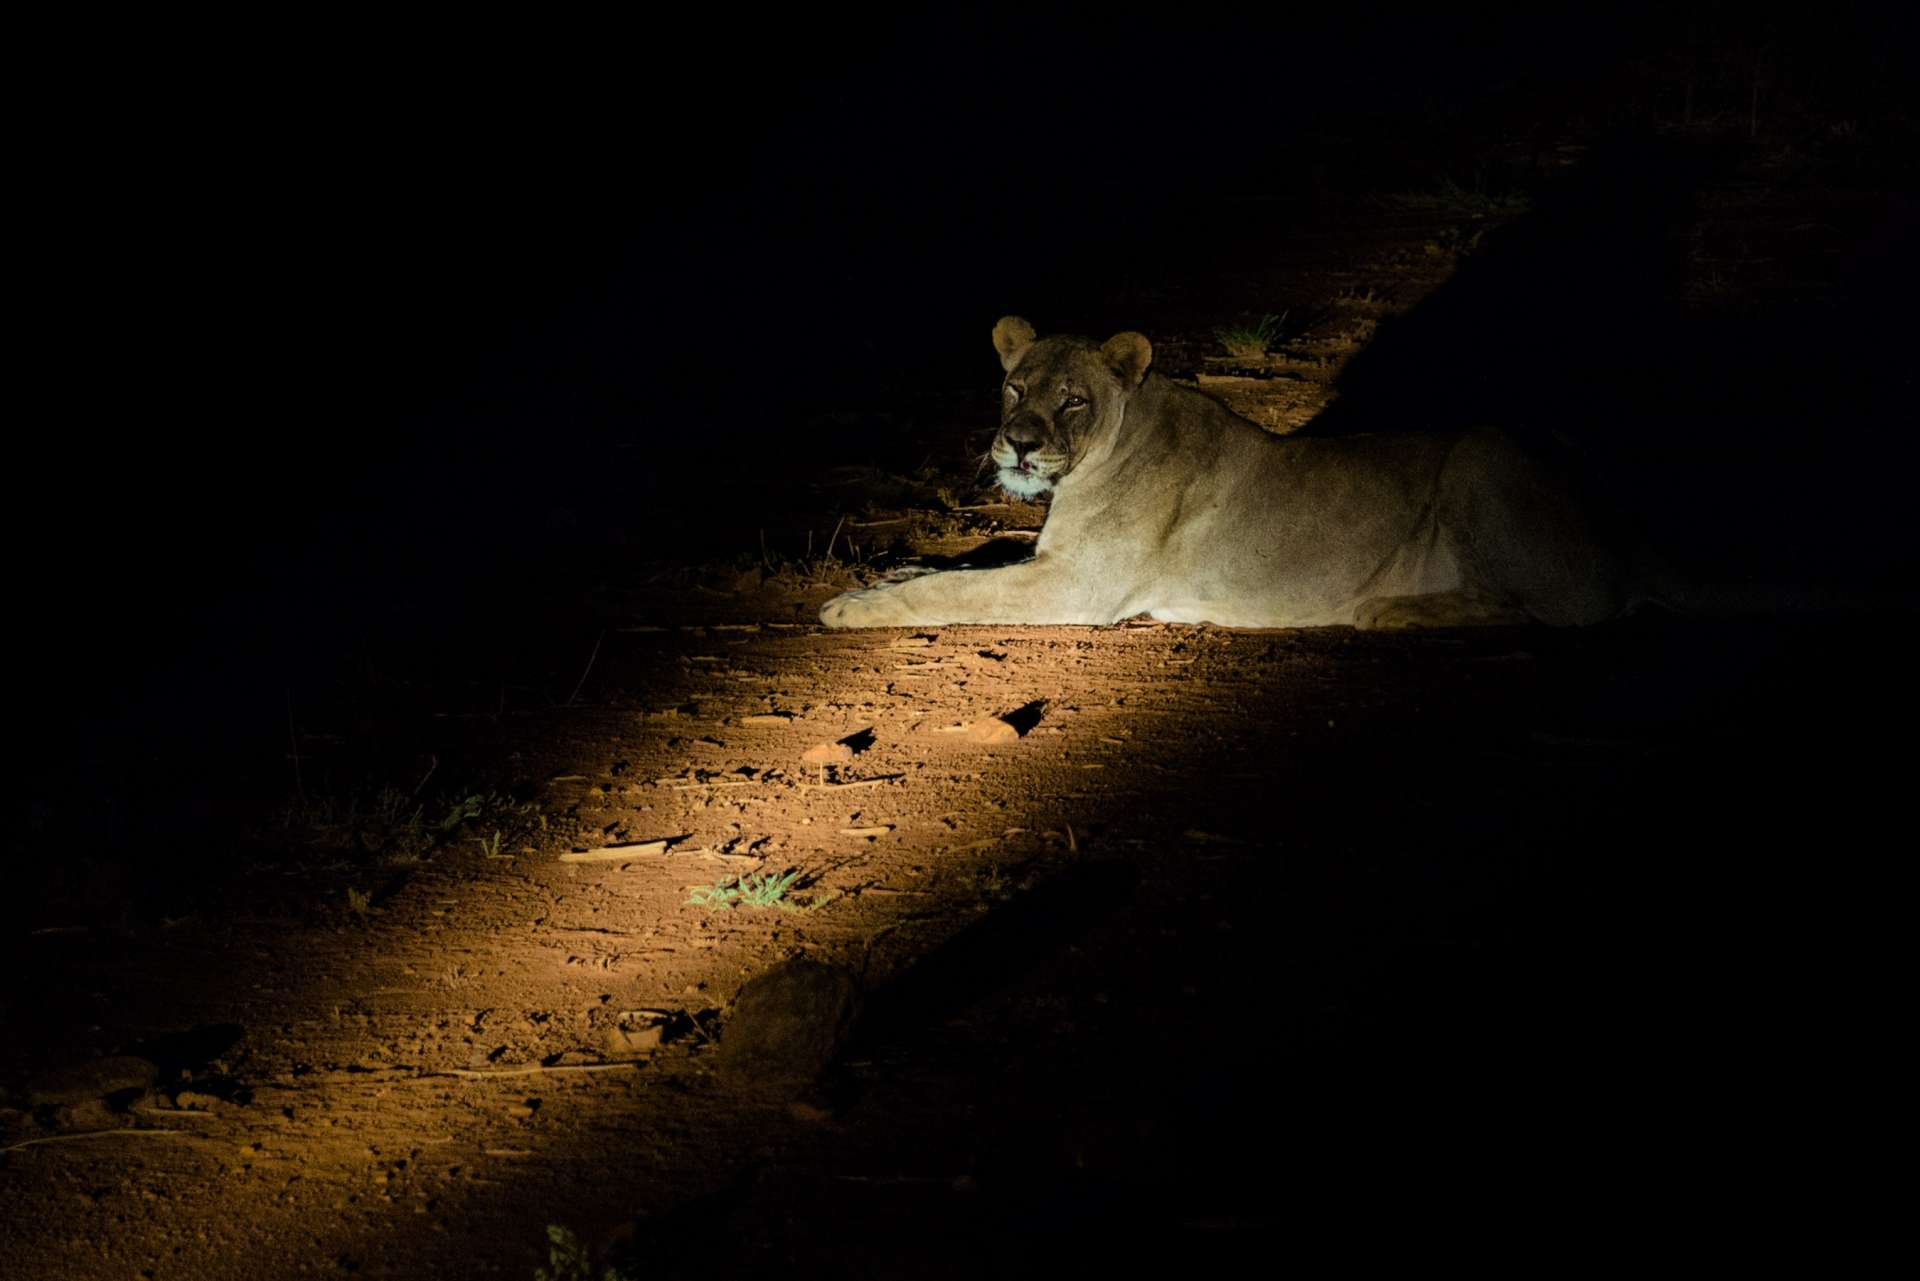 south africa madikwe safari pescart lioness by night